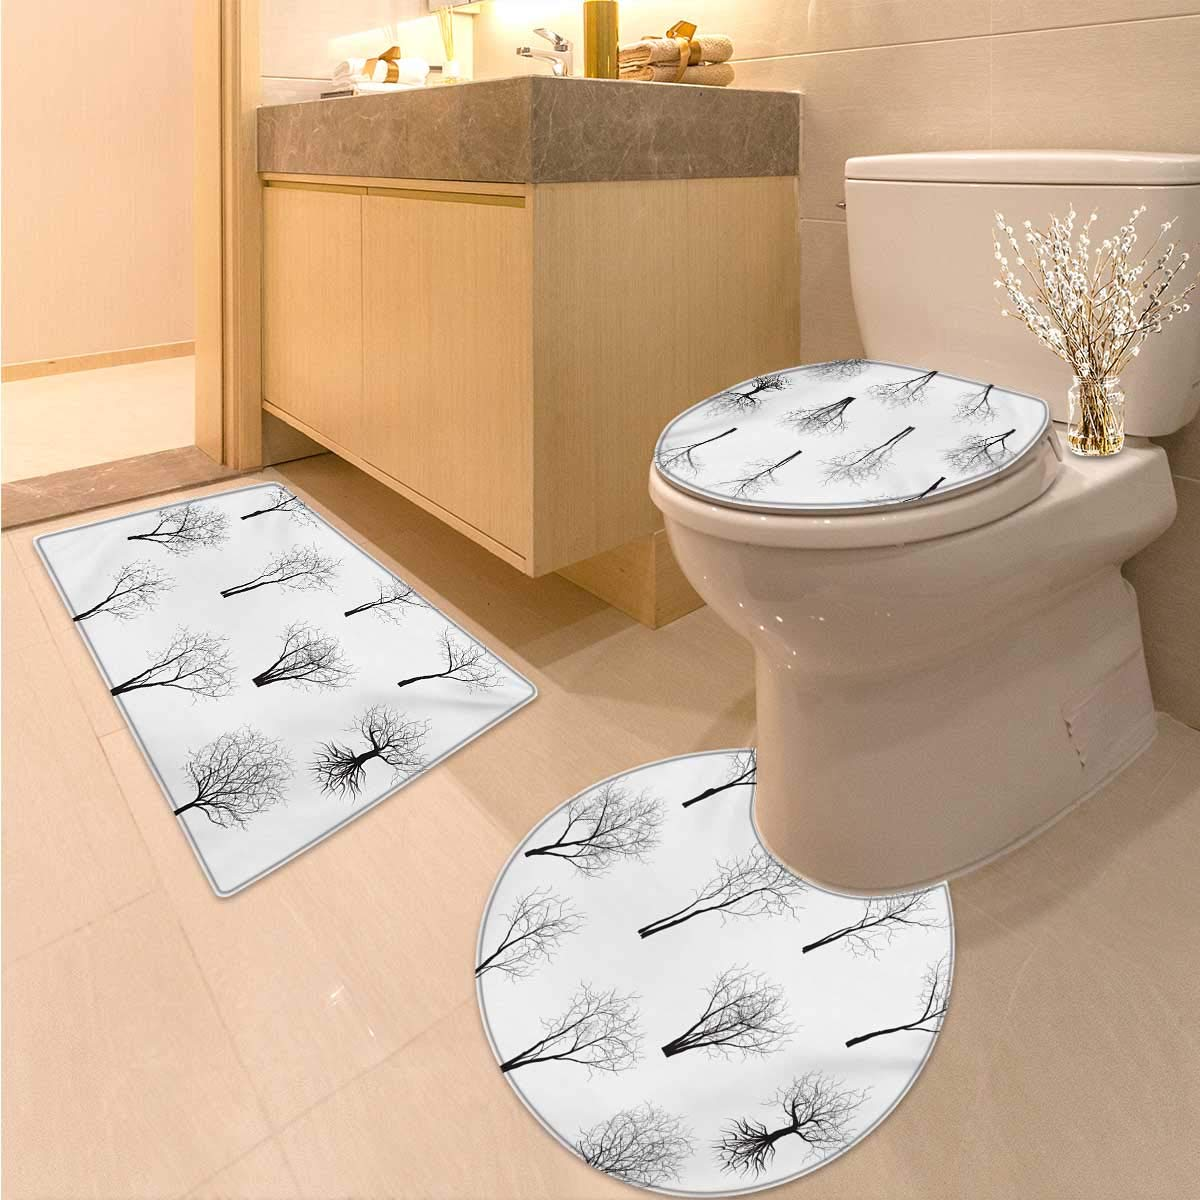 Anhuthree Forest 3 Piece Toilet mat Set Spooky Horror Movie Themed Branches in The Forest Trees Nature Artwork Print Printed Bath Rug Set Black and White